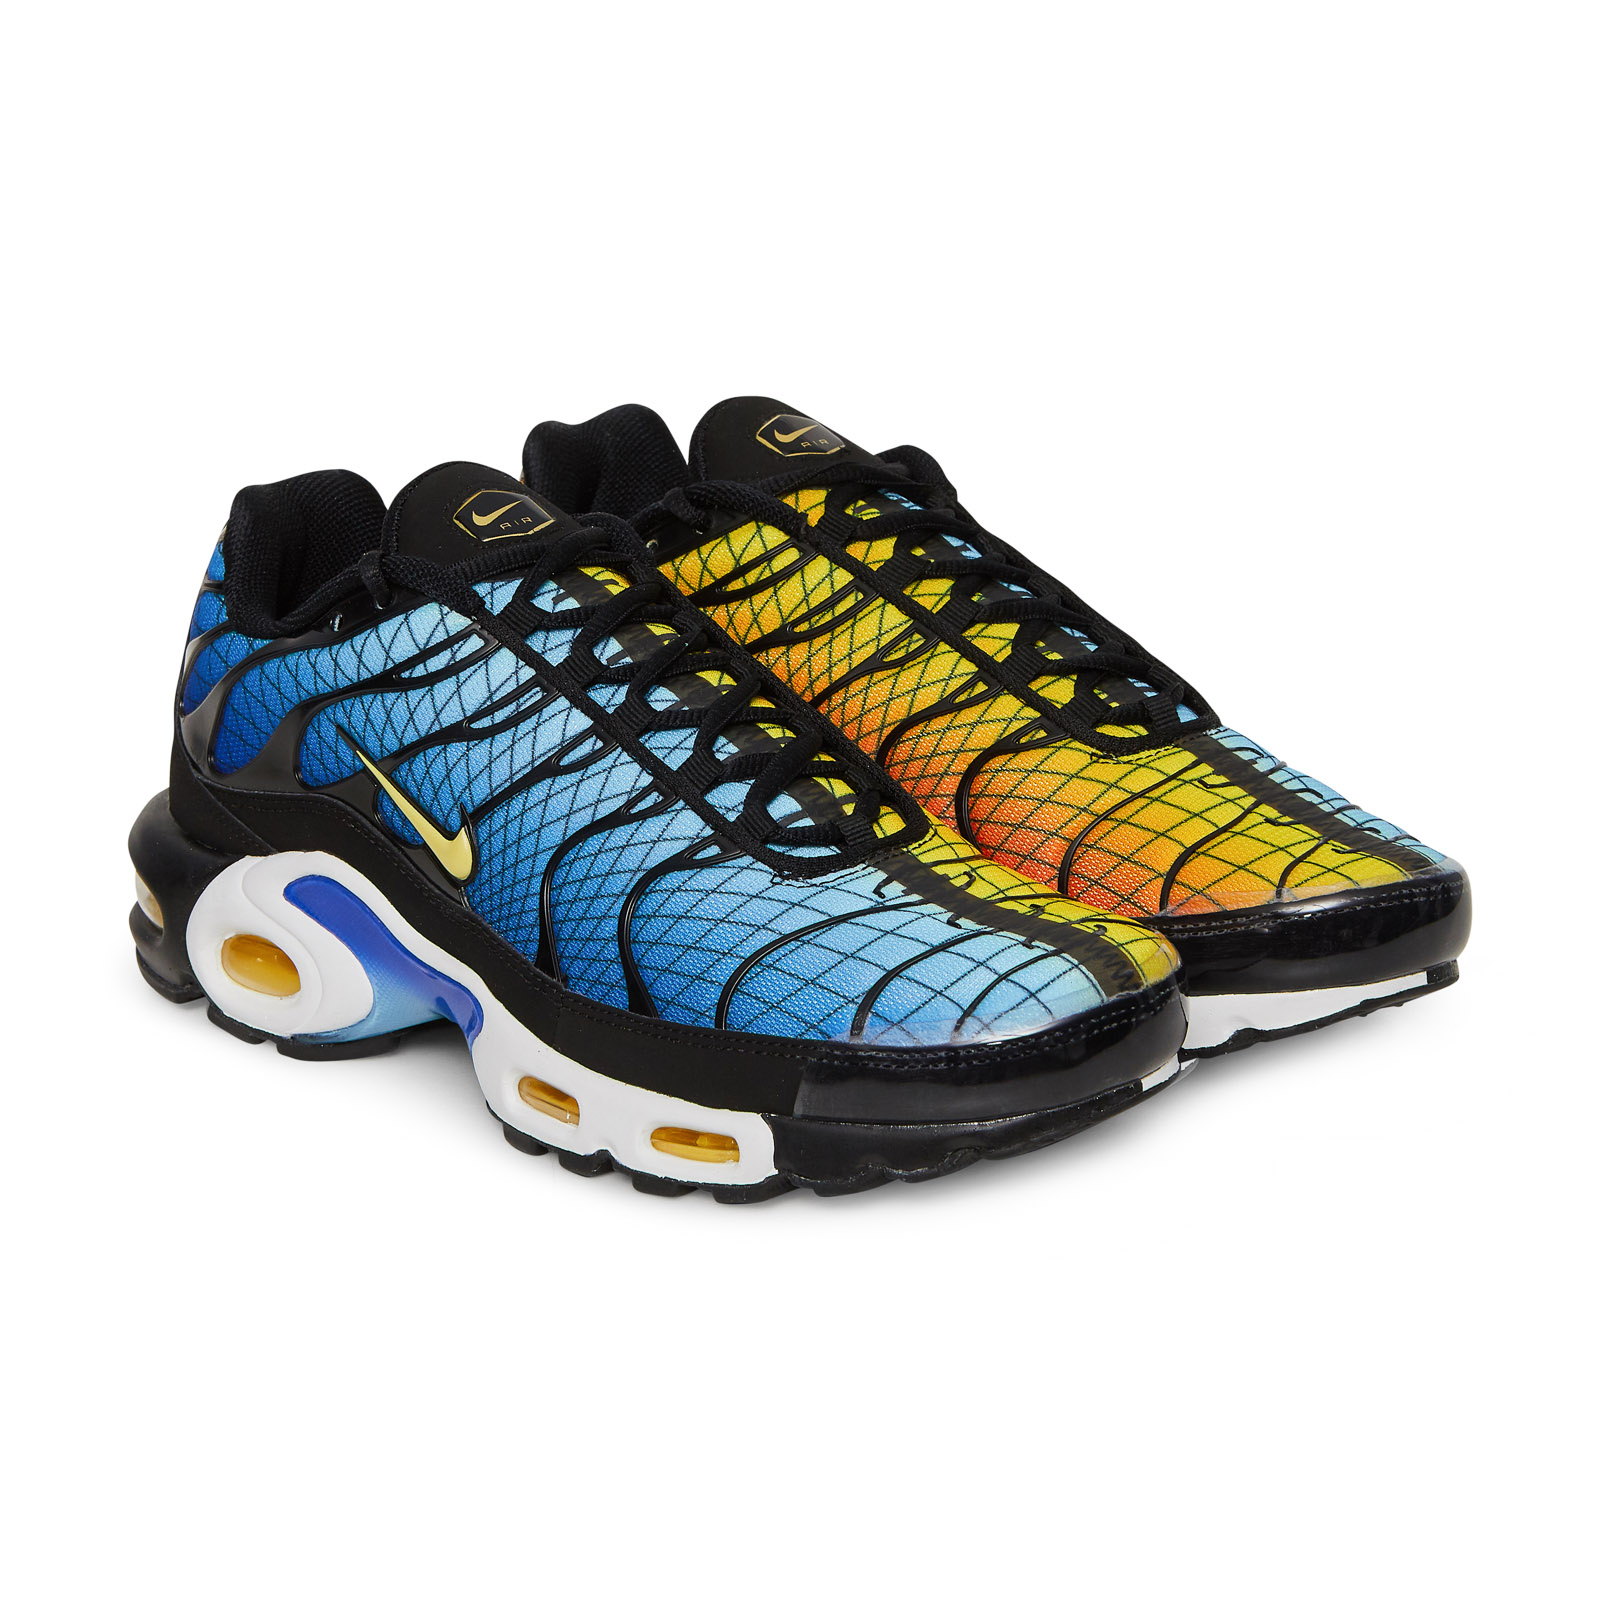 promo code 4e367 acc14 Very Goods   Nike Special Project Air Max Plus Sneakers - Slam Jam Socialism